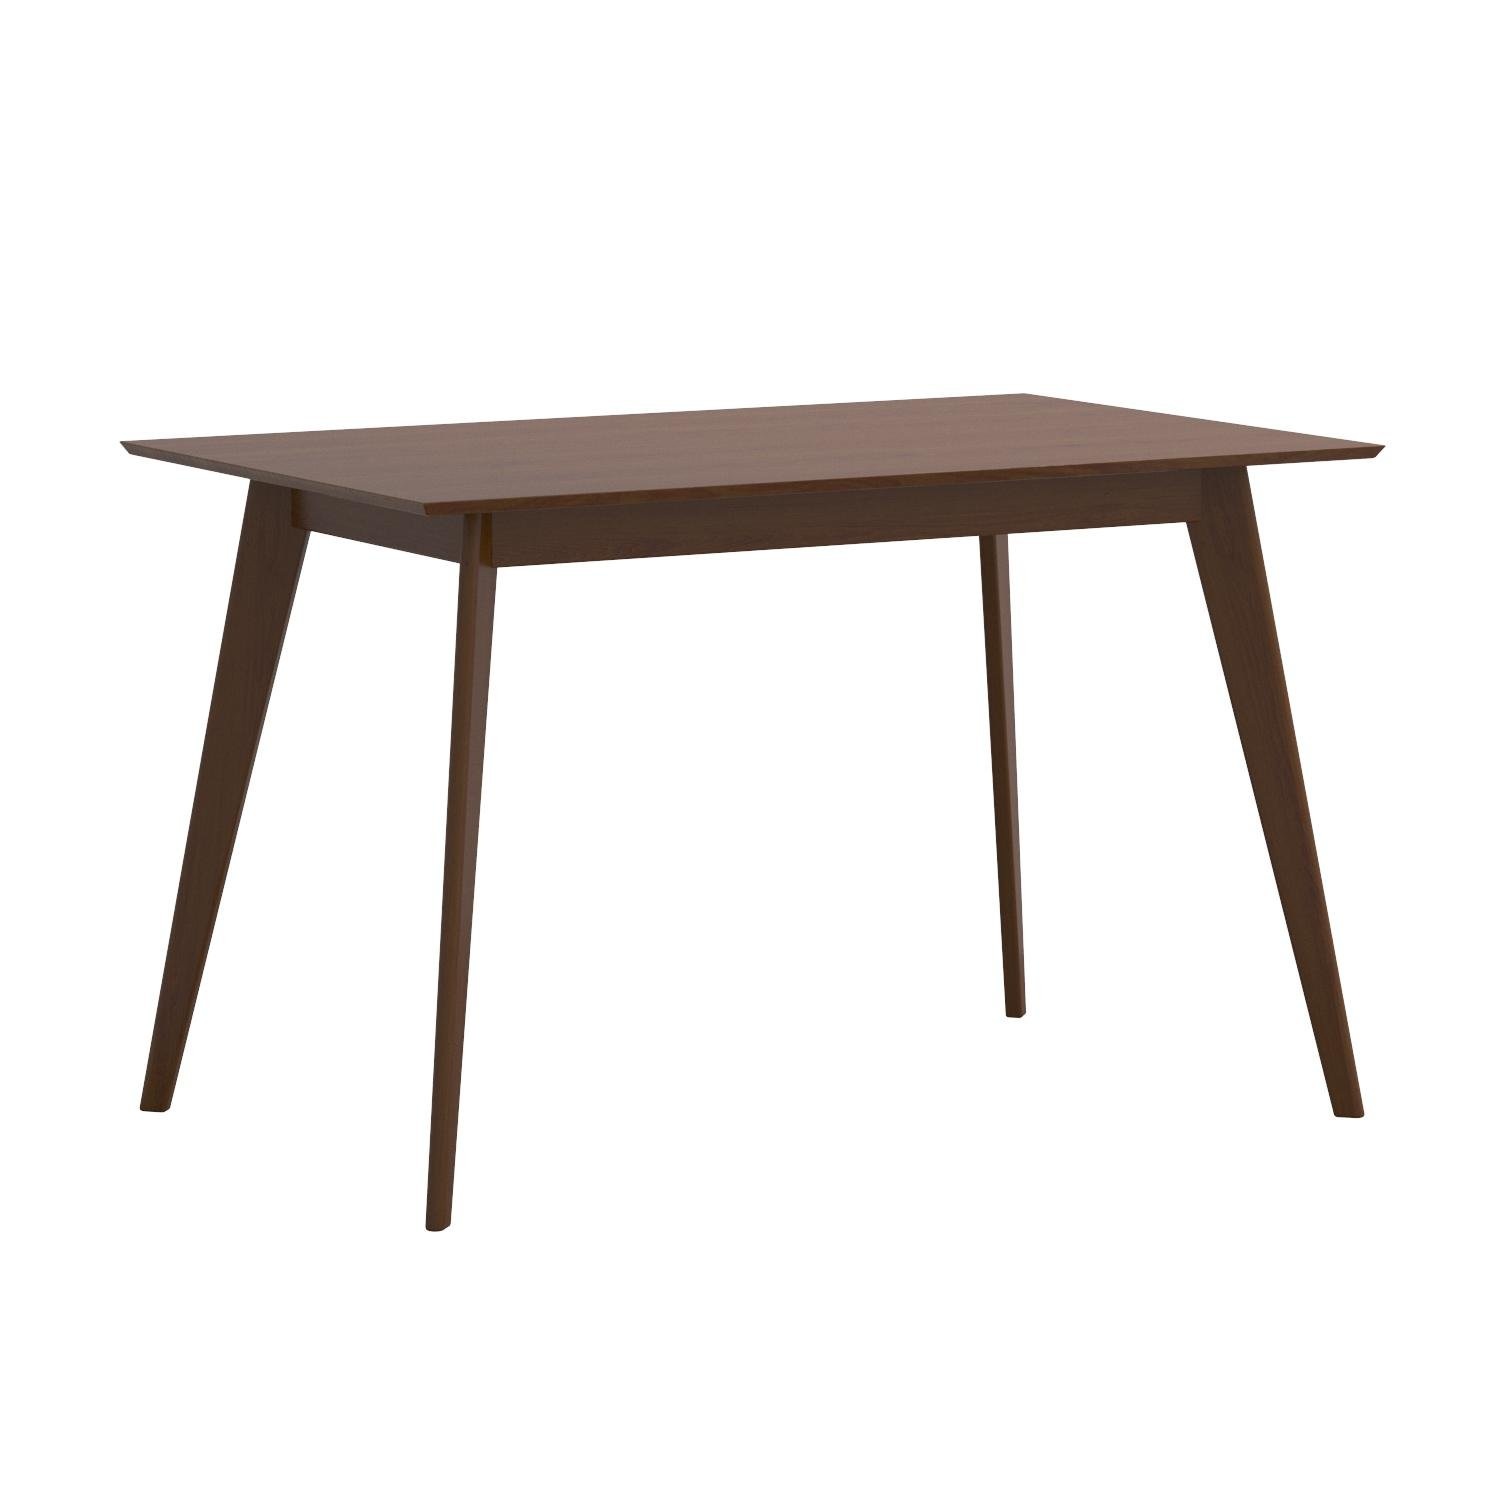 Coaster 103061 Home Furnishings Dining Table, Chestnut by Coaster Home Furnishings (Image #6)